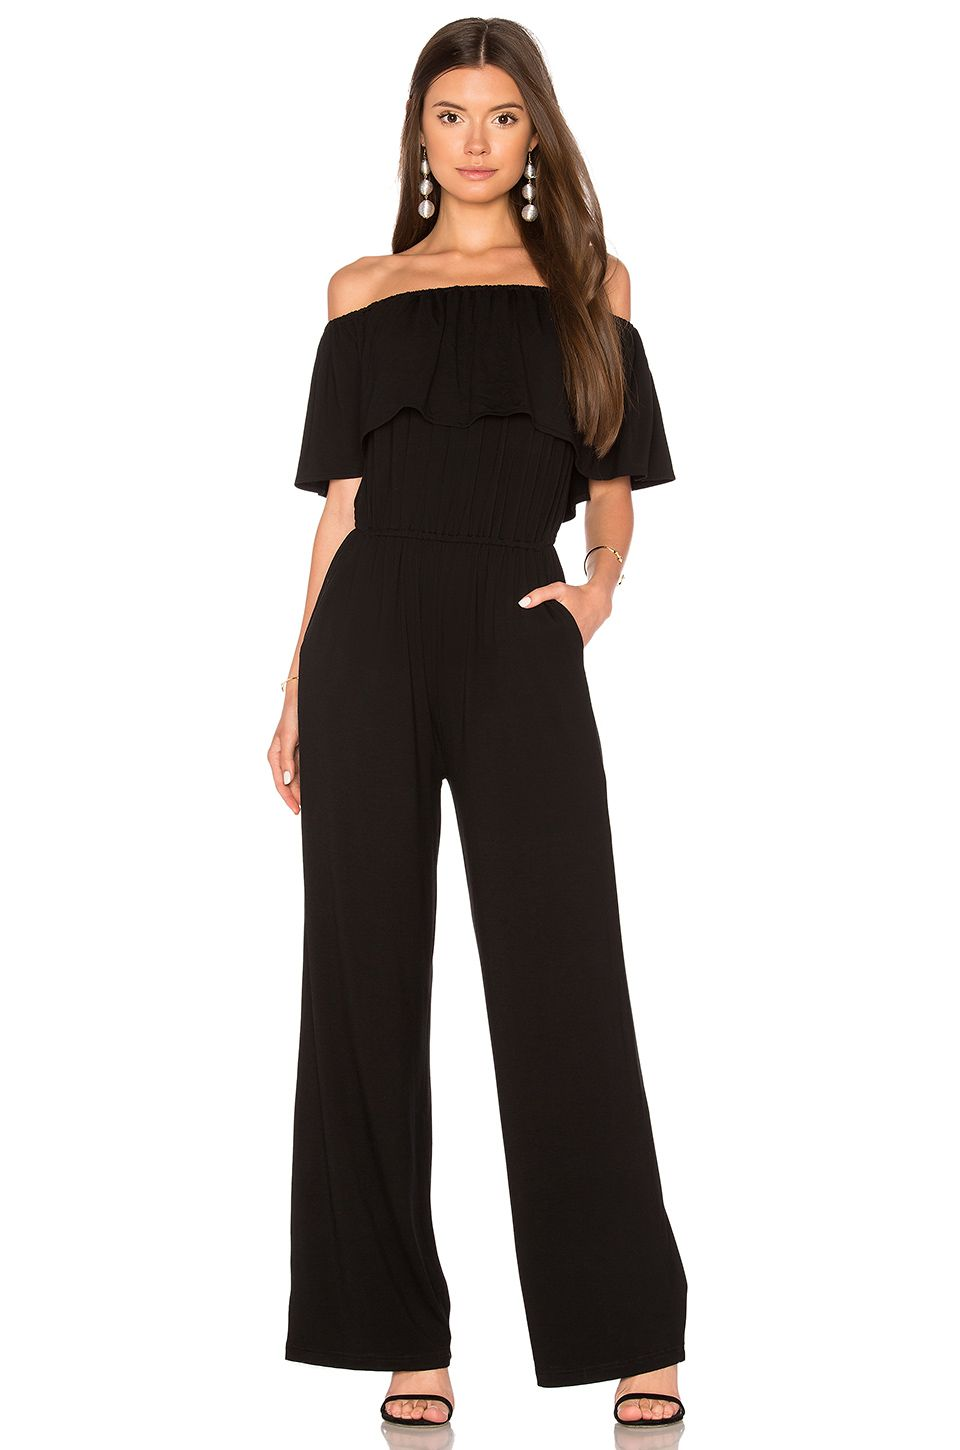 956d487f33da Shop for BB Dakota Niko Jumpsuit in Black at REVOLVE. Free day shipping and  returns